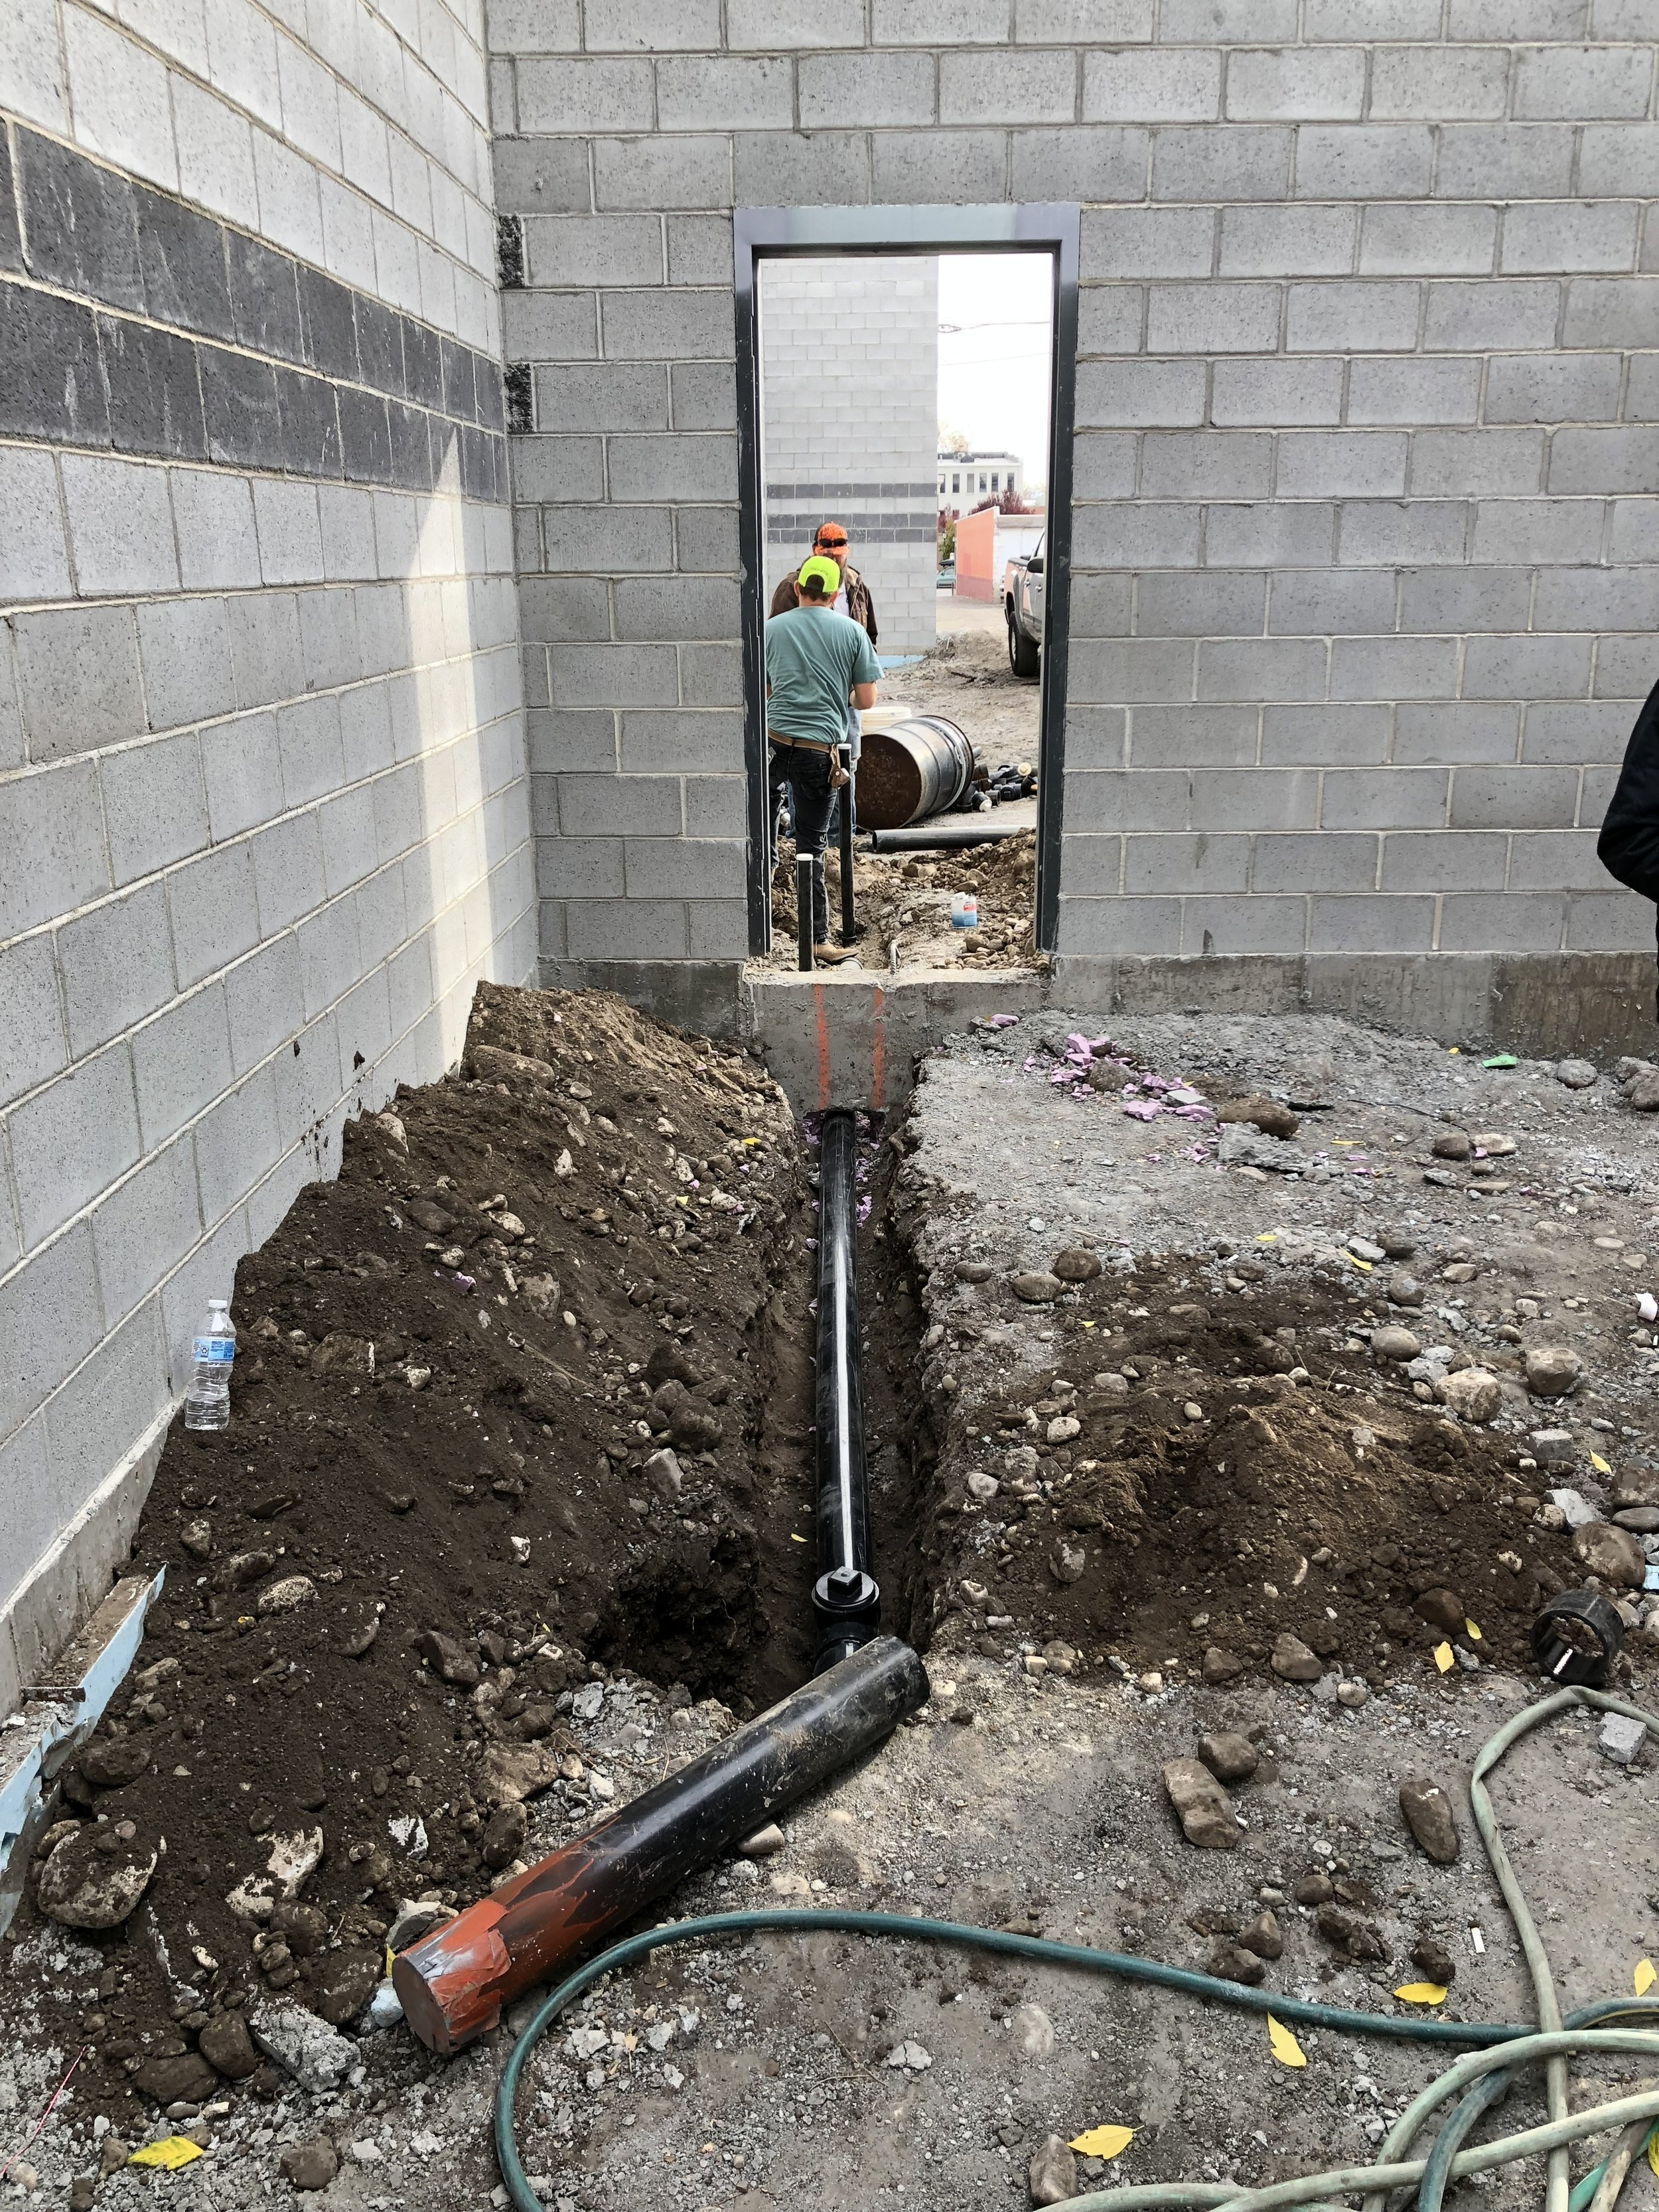 Today the underground work started. This photo shows the plumbers tying into the new sewer line from the new janitor closet and bathroom. They finished most of their work today so the rest of the week should be the electricians who have a lot to do. We will also be running conduit to carry lines from the house into the studios and between the studios, as well as the lines that go from the racks to the consoles and the machine rooms.